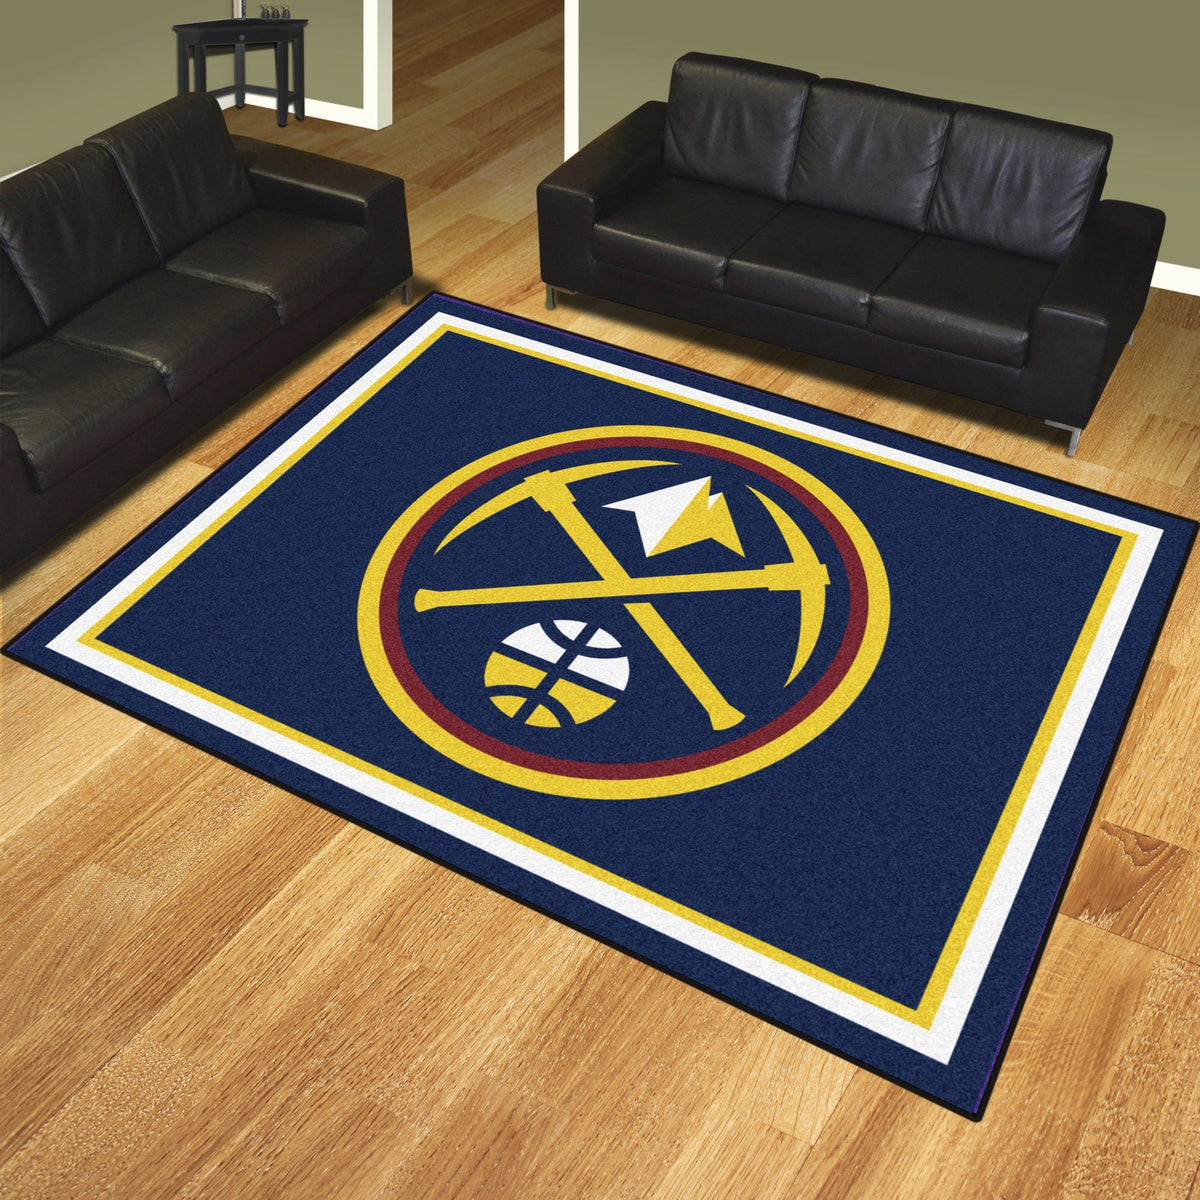 NBA - 8' x 10' Rug NBA Mats, Plush Rugs, 8x10 Rug, NBA, Home Fan Mats Denver Nuggets